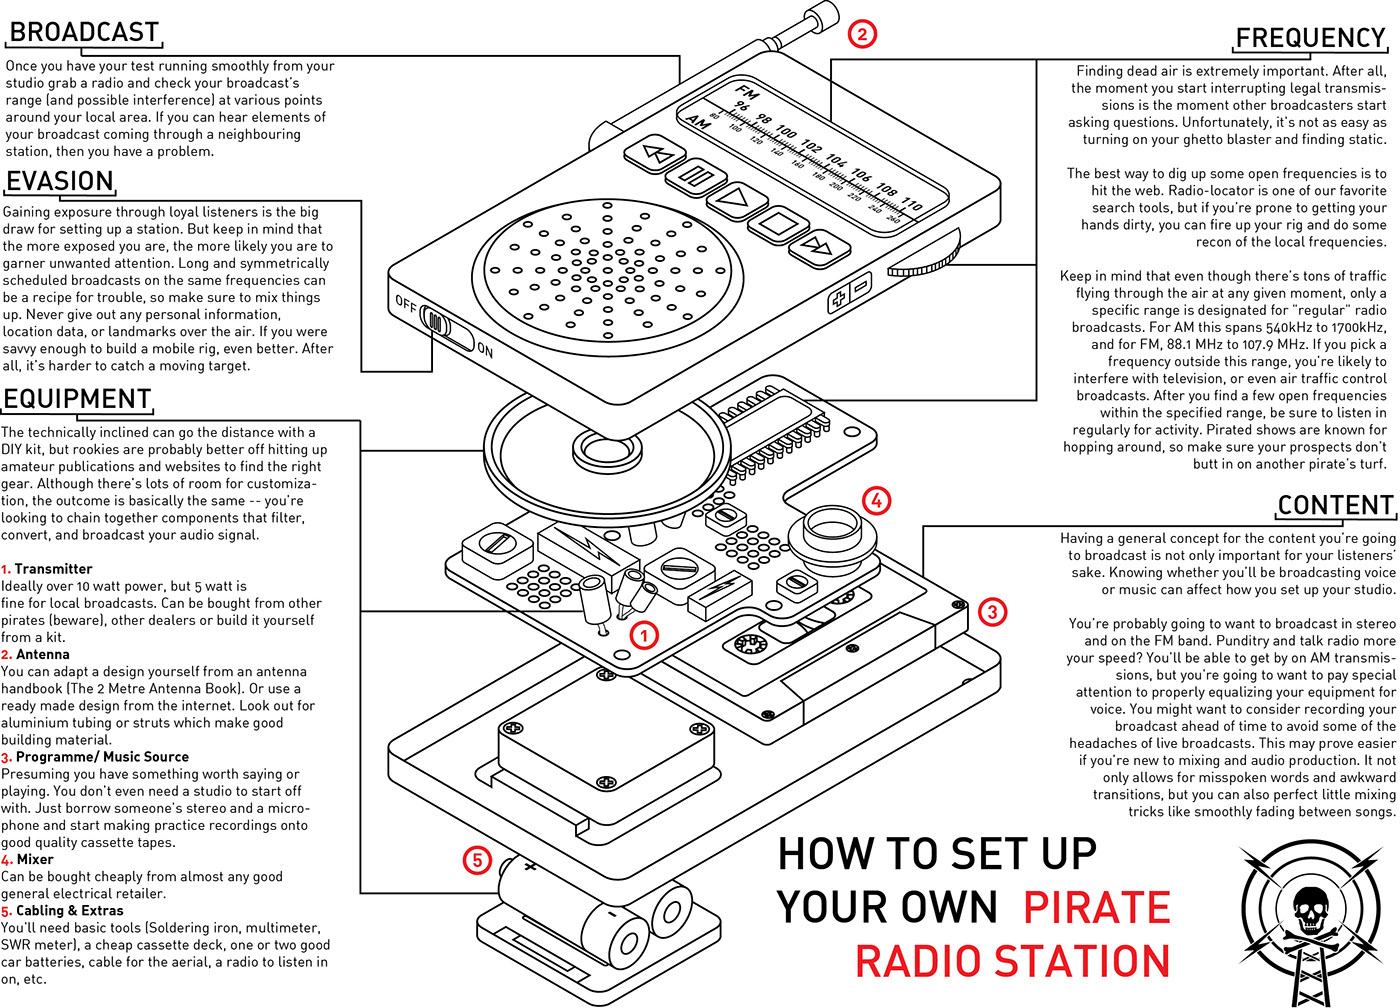 How to Set Up Your Own Pirate Radio Station Infographic on